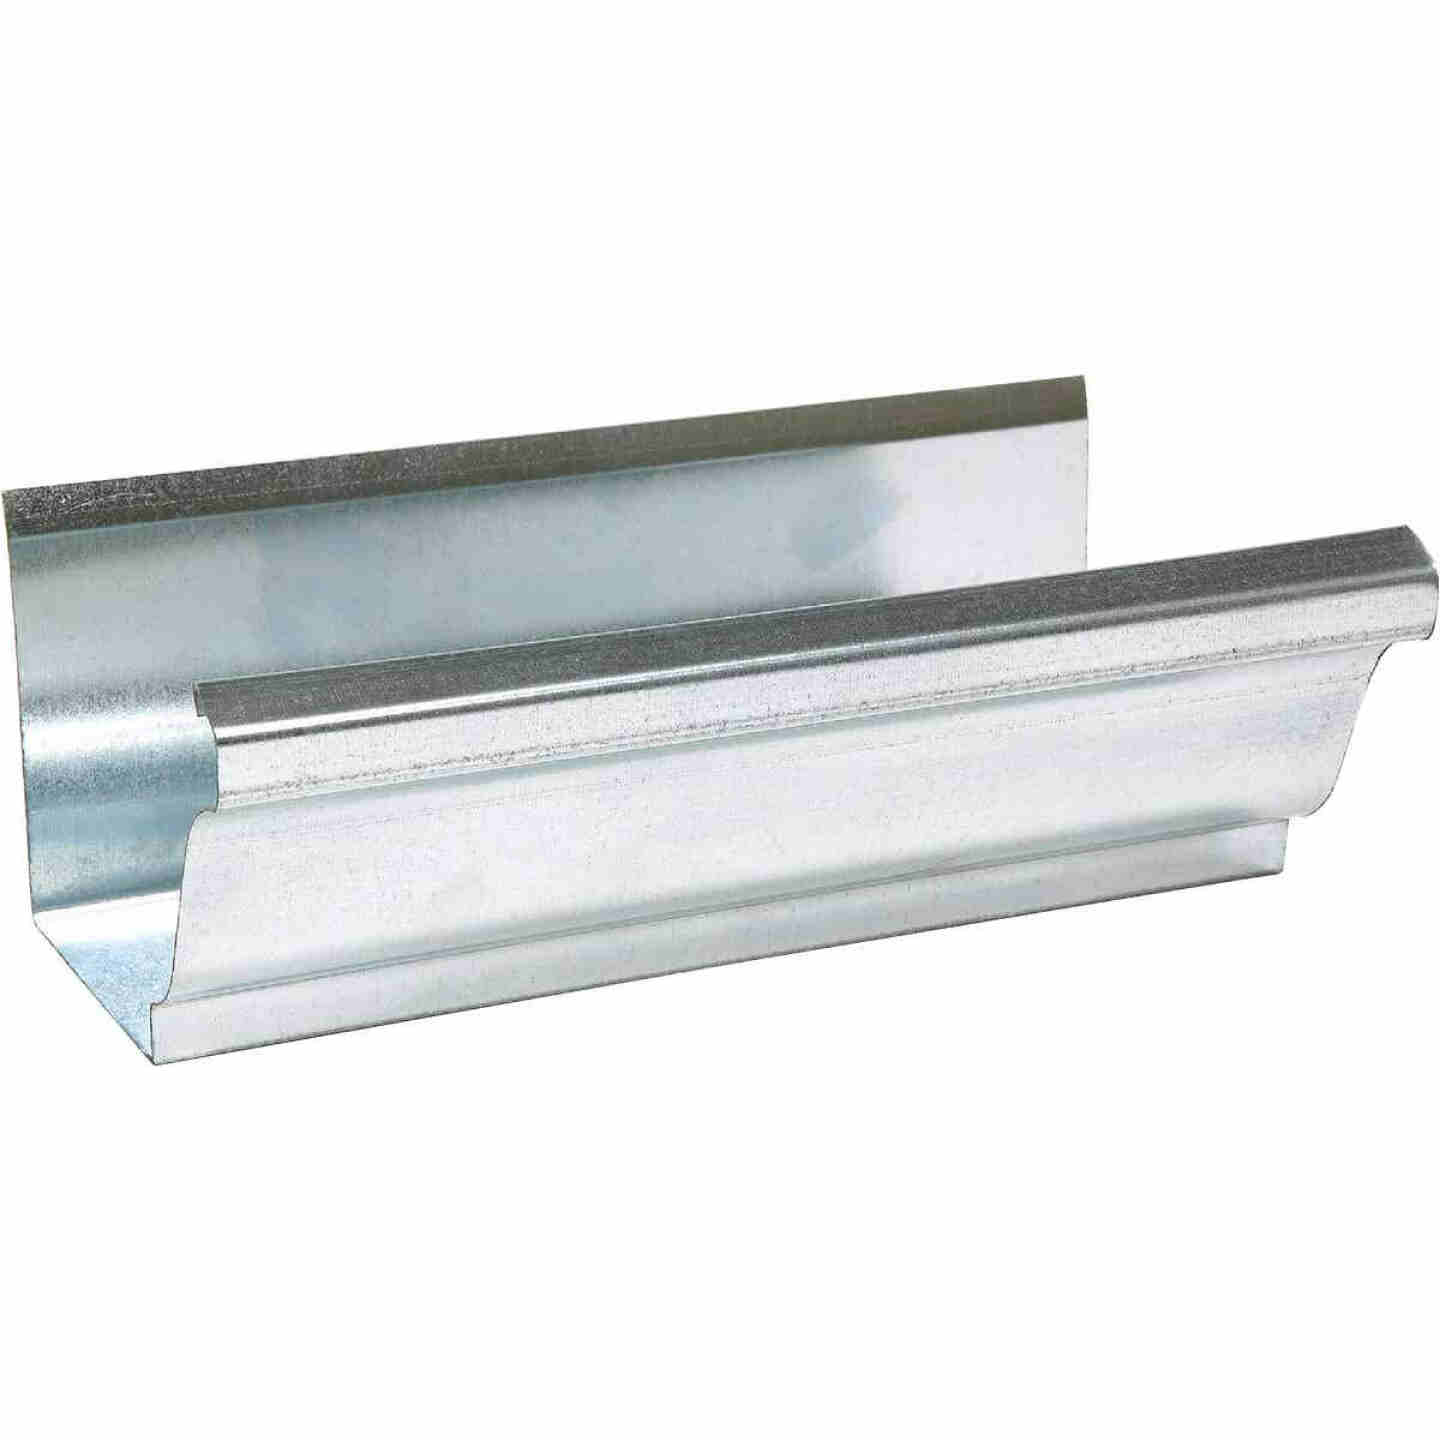 Amerimax 5 In. x 10 Ft. K-Style Galvanized Stee lGutter Image 1